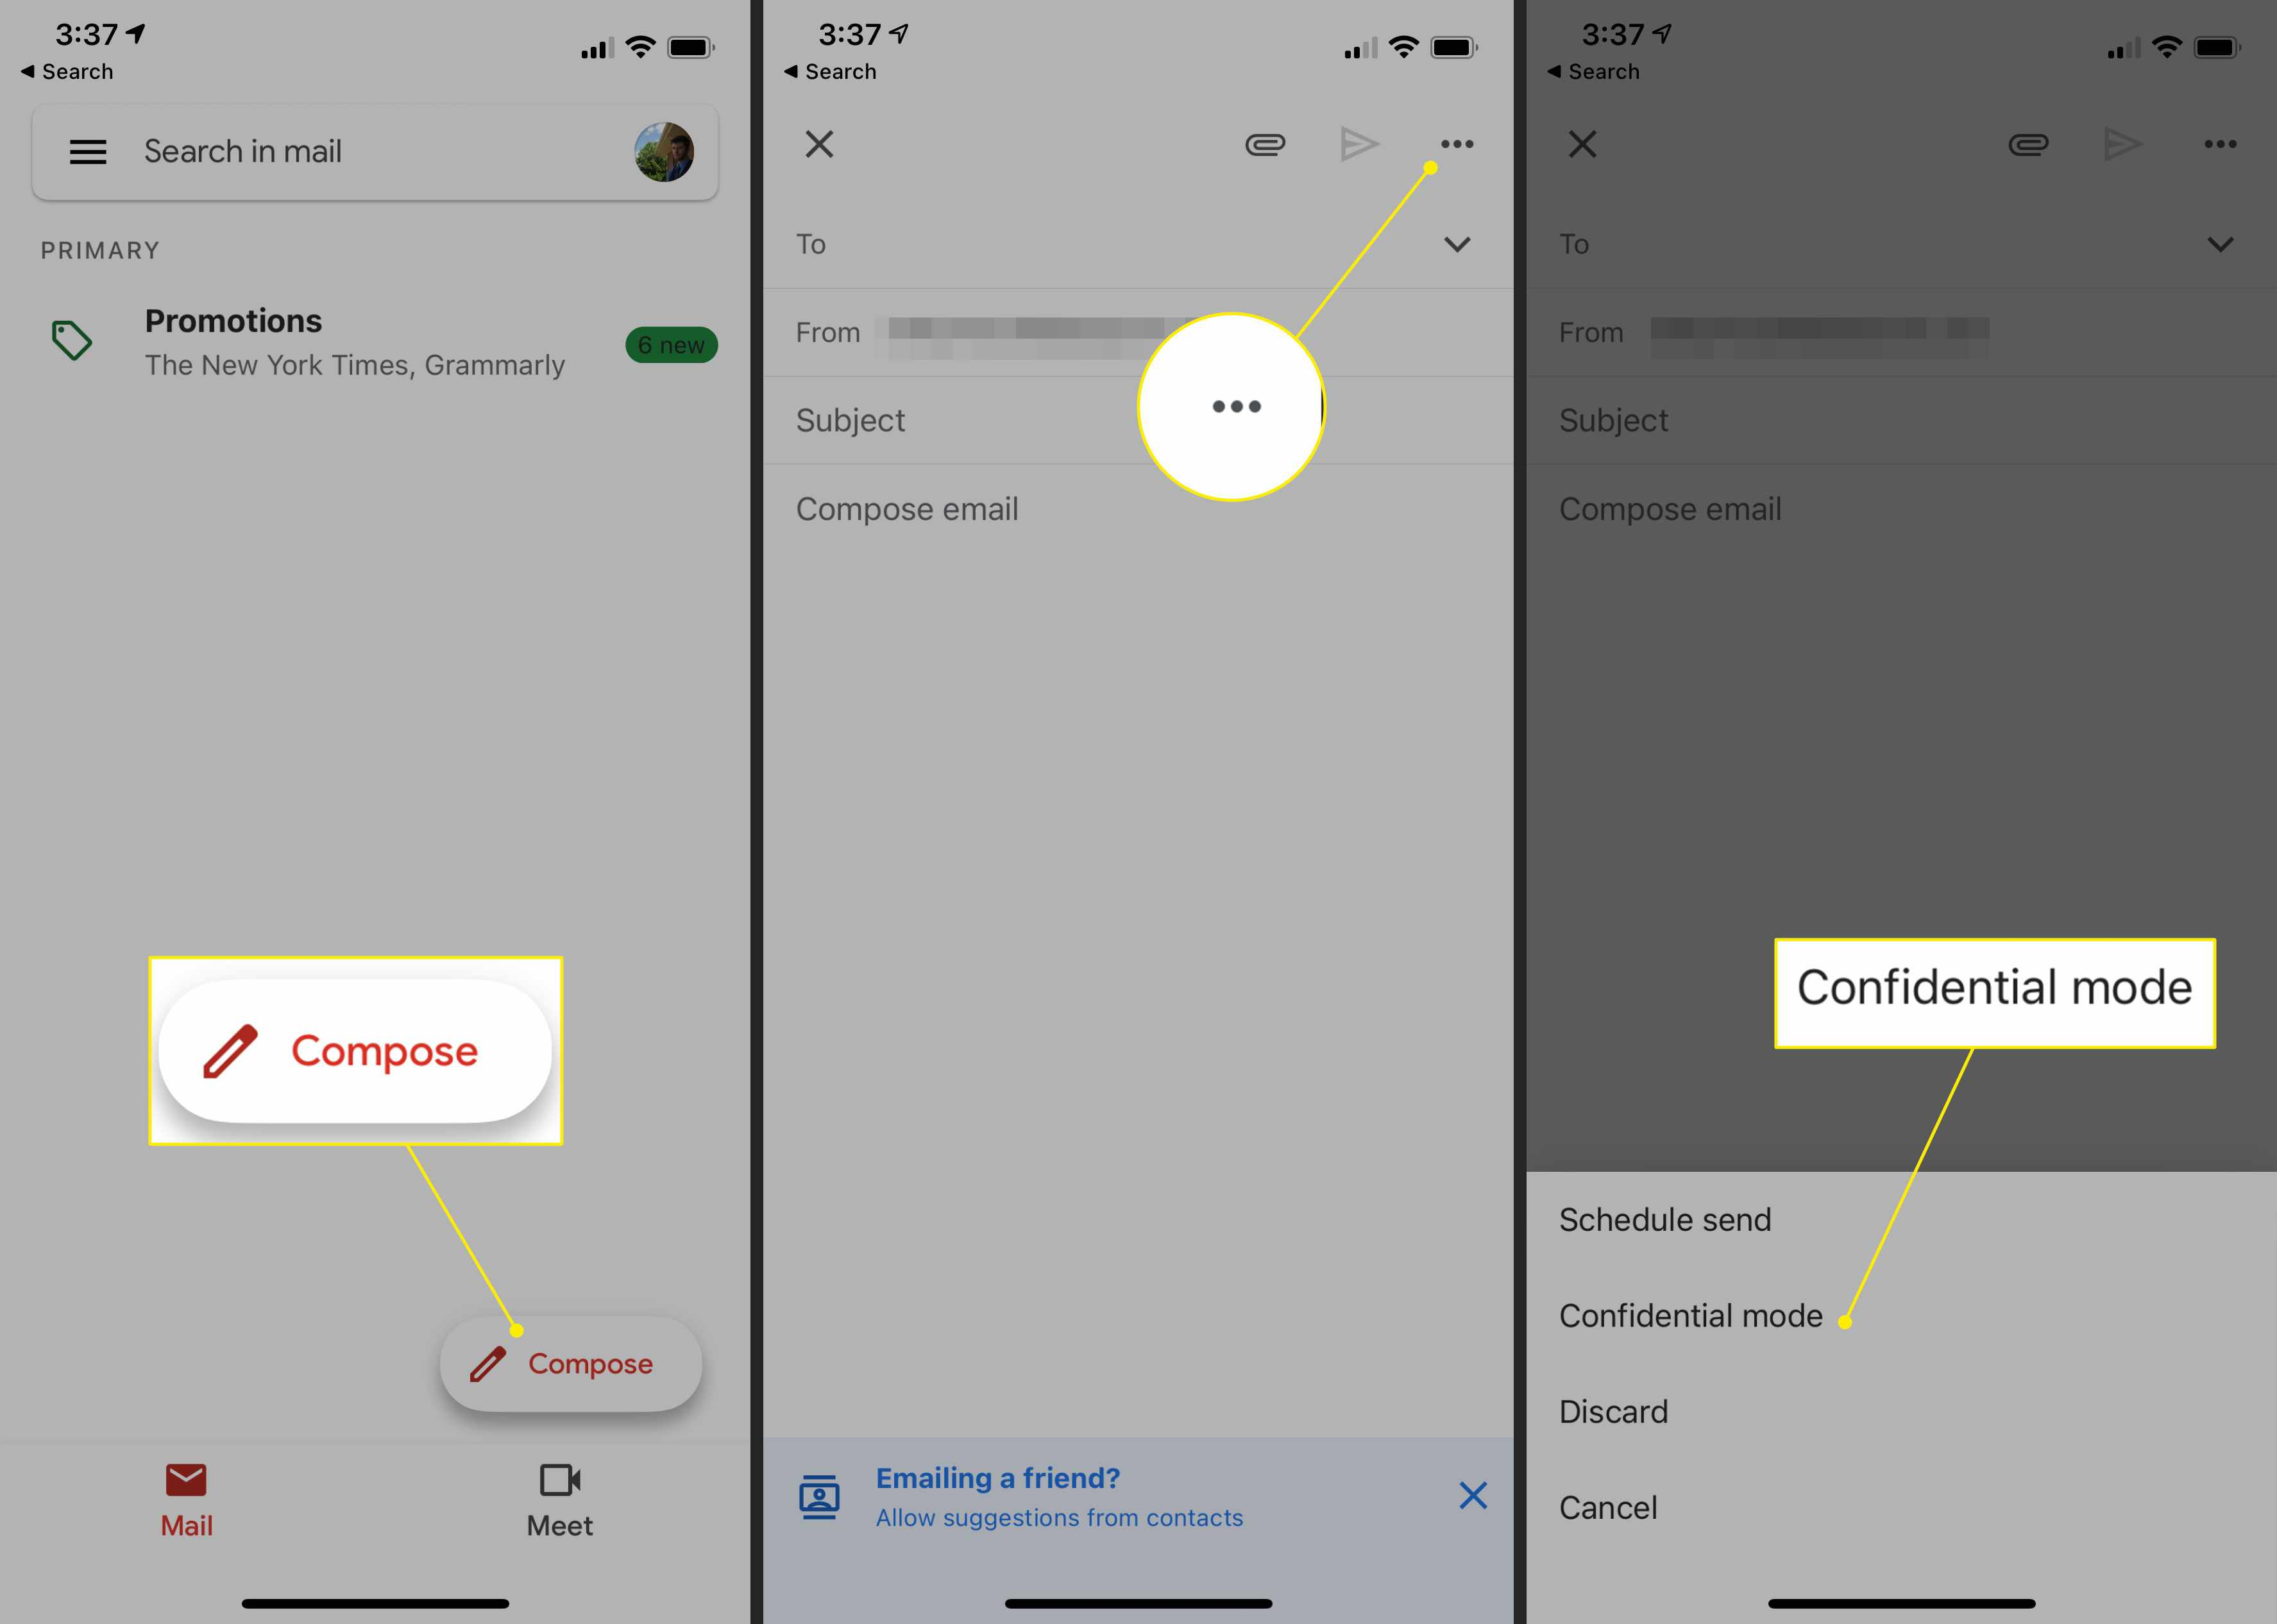 Compose, More, and Confidential Mode options in the Gmail app